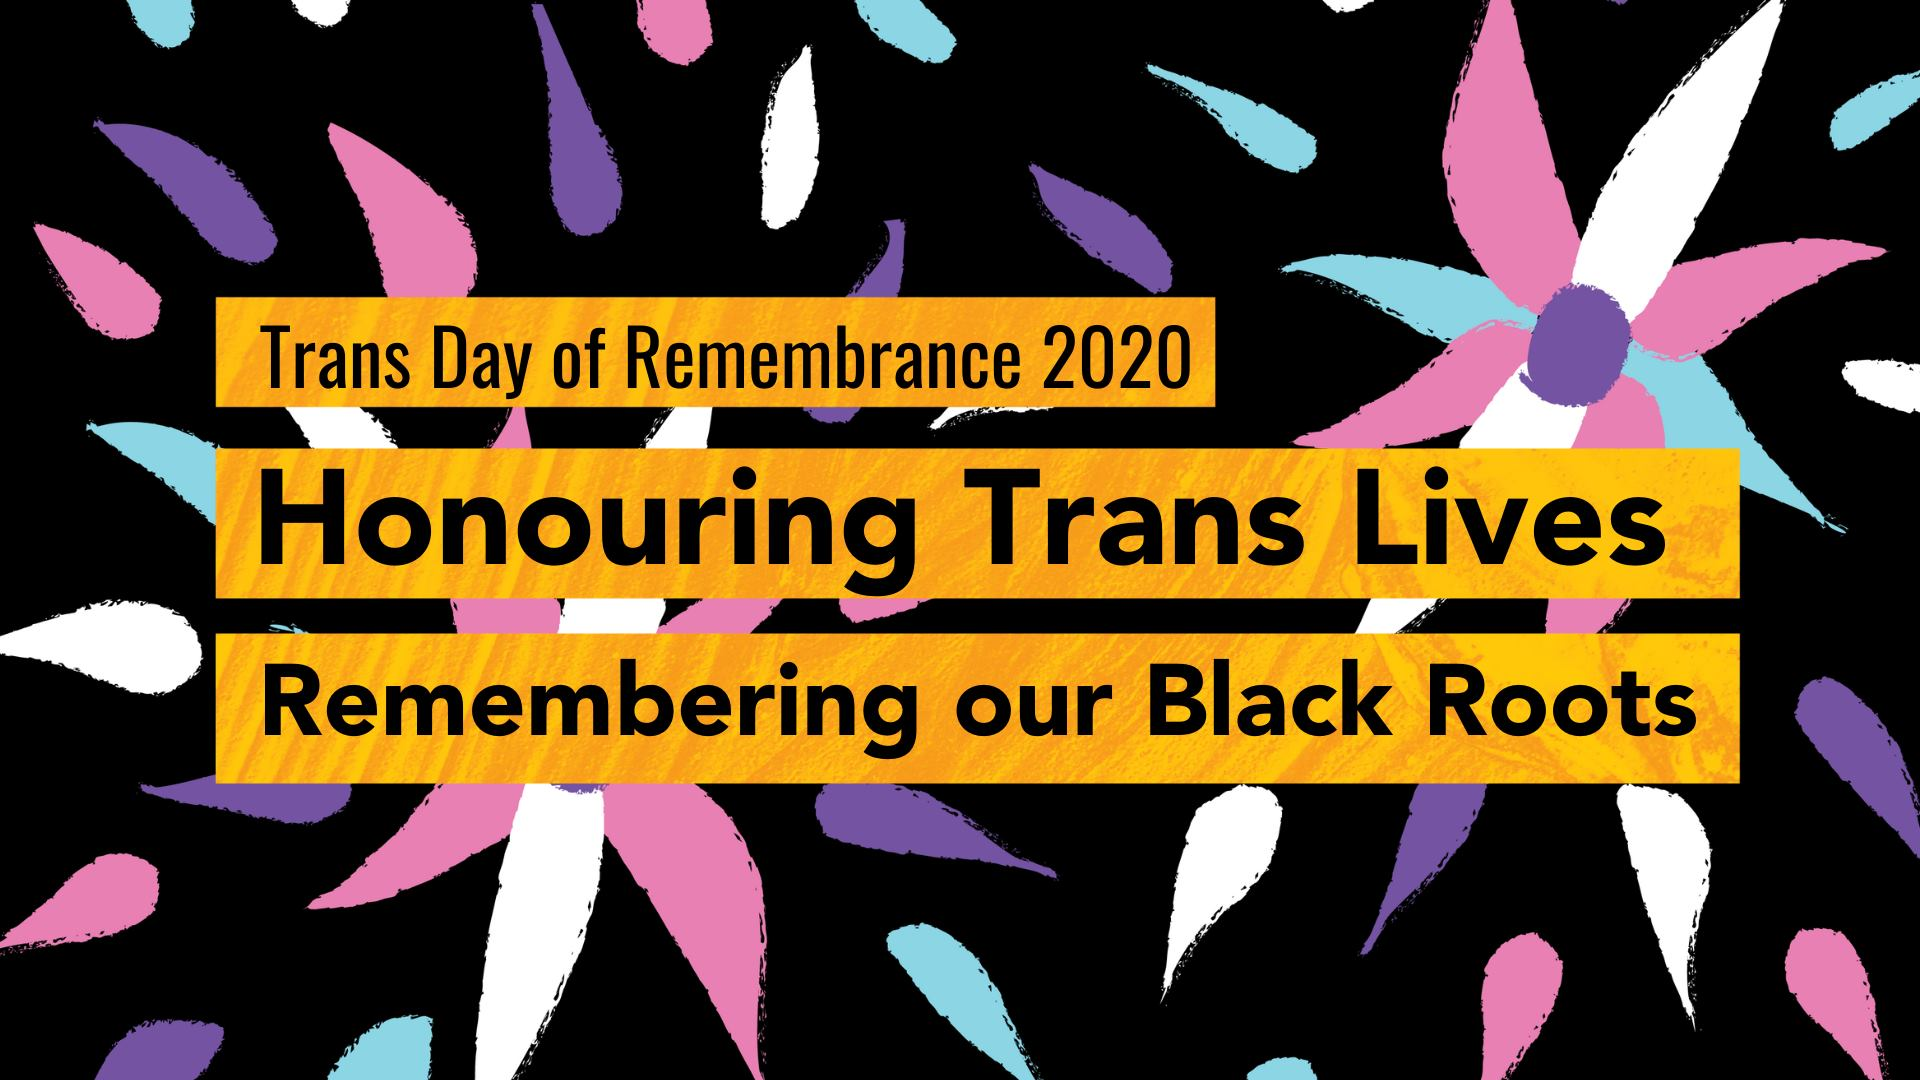 QueerEvents.ca - virutal events - tdor 2020